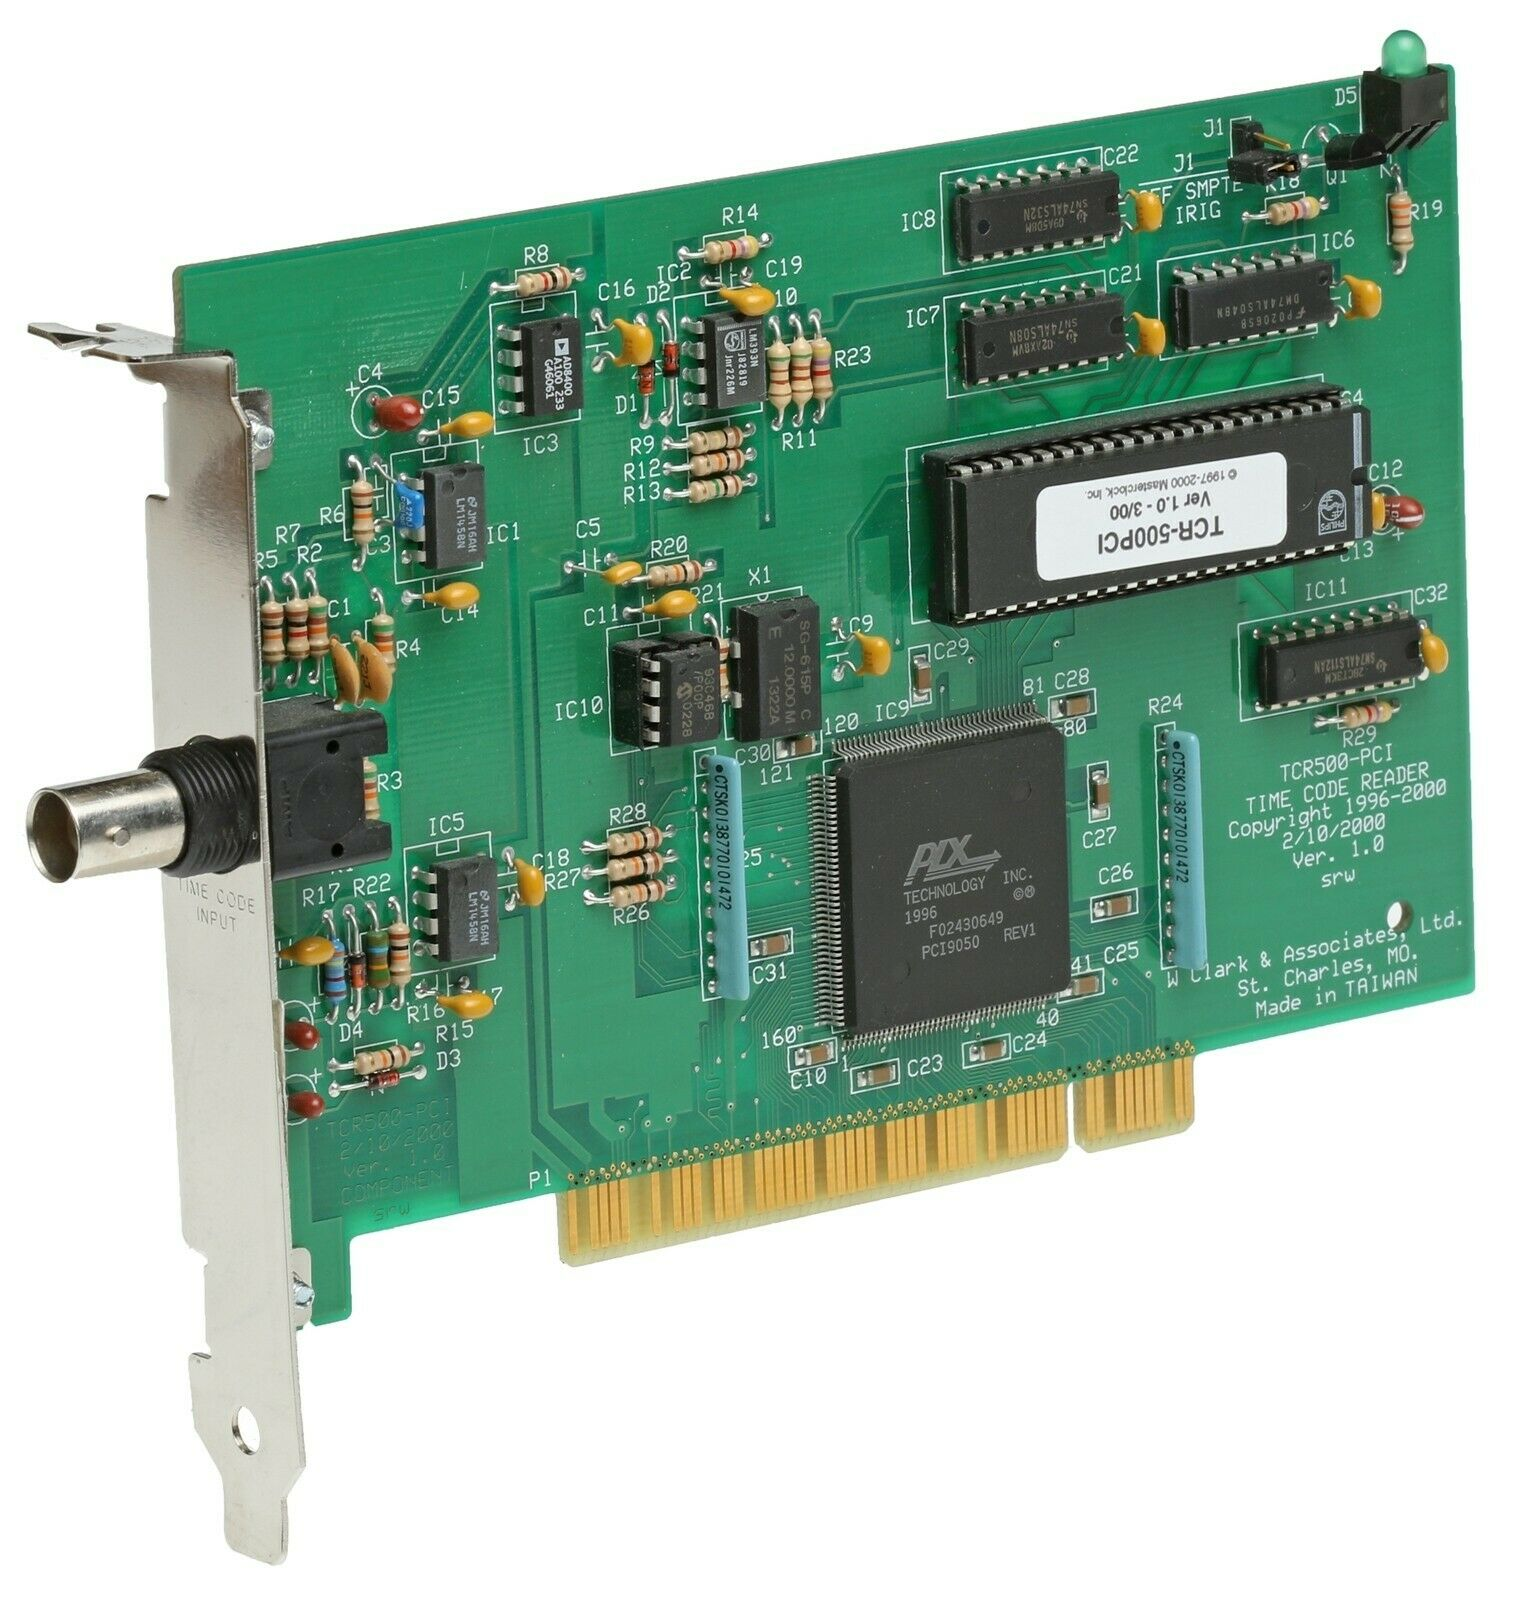 Masterclock TCR-500 Computer PCI SMPTE IRIG-B Serial Timecode Input Reader Card [Used]-www.prostudioconnection.com